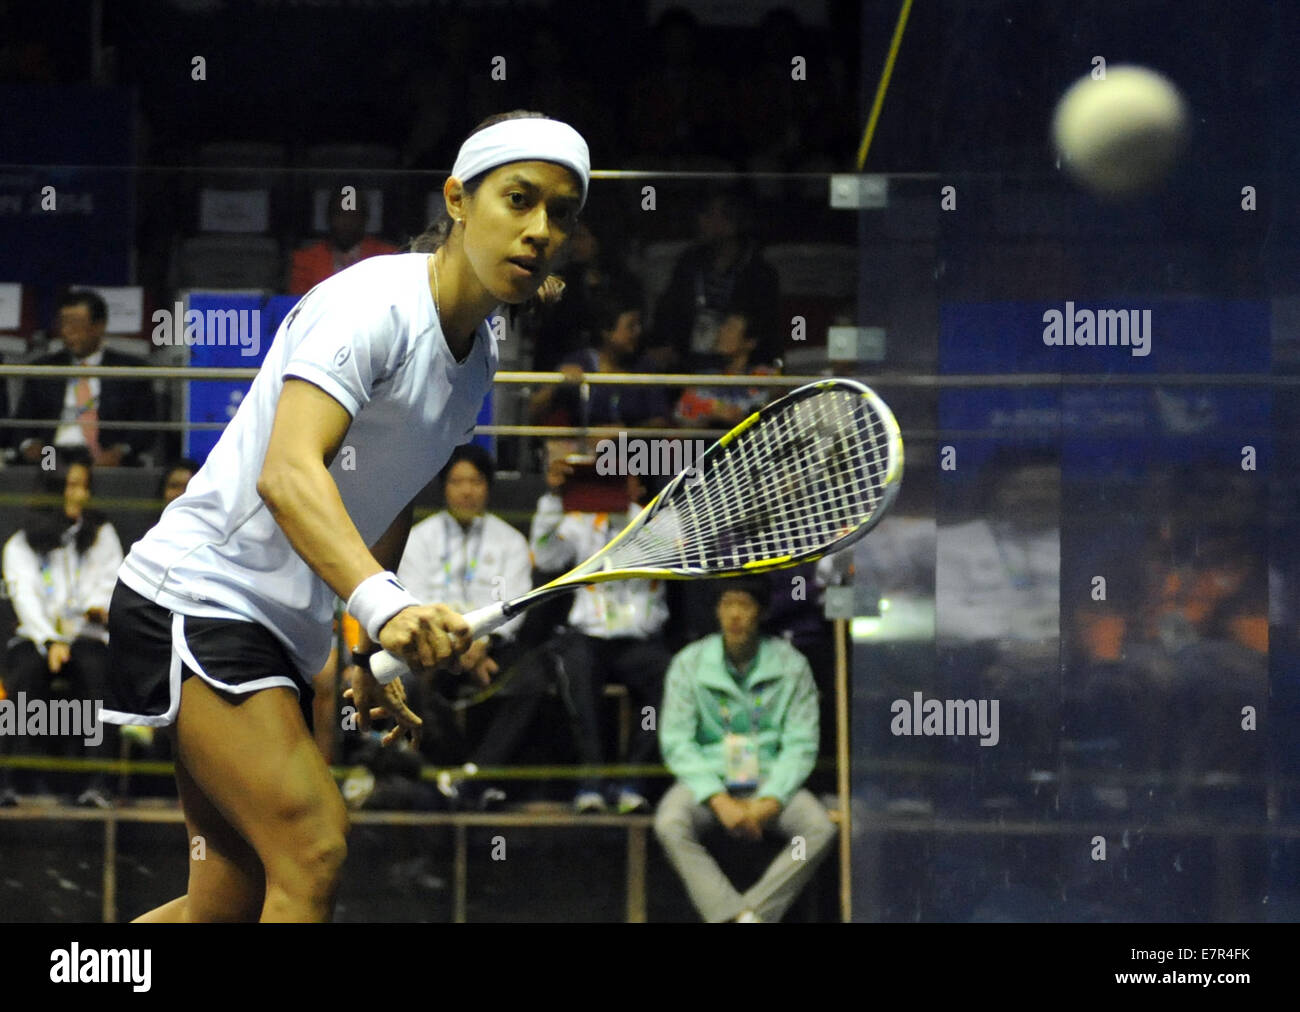 Incheon, South Korea. 23rd Sep, 2014. David Nicol Ann of Malaysia plays a shot against her teammate Low Wee Wern - Stock Image